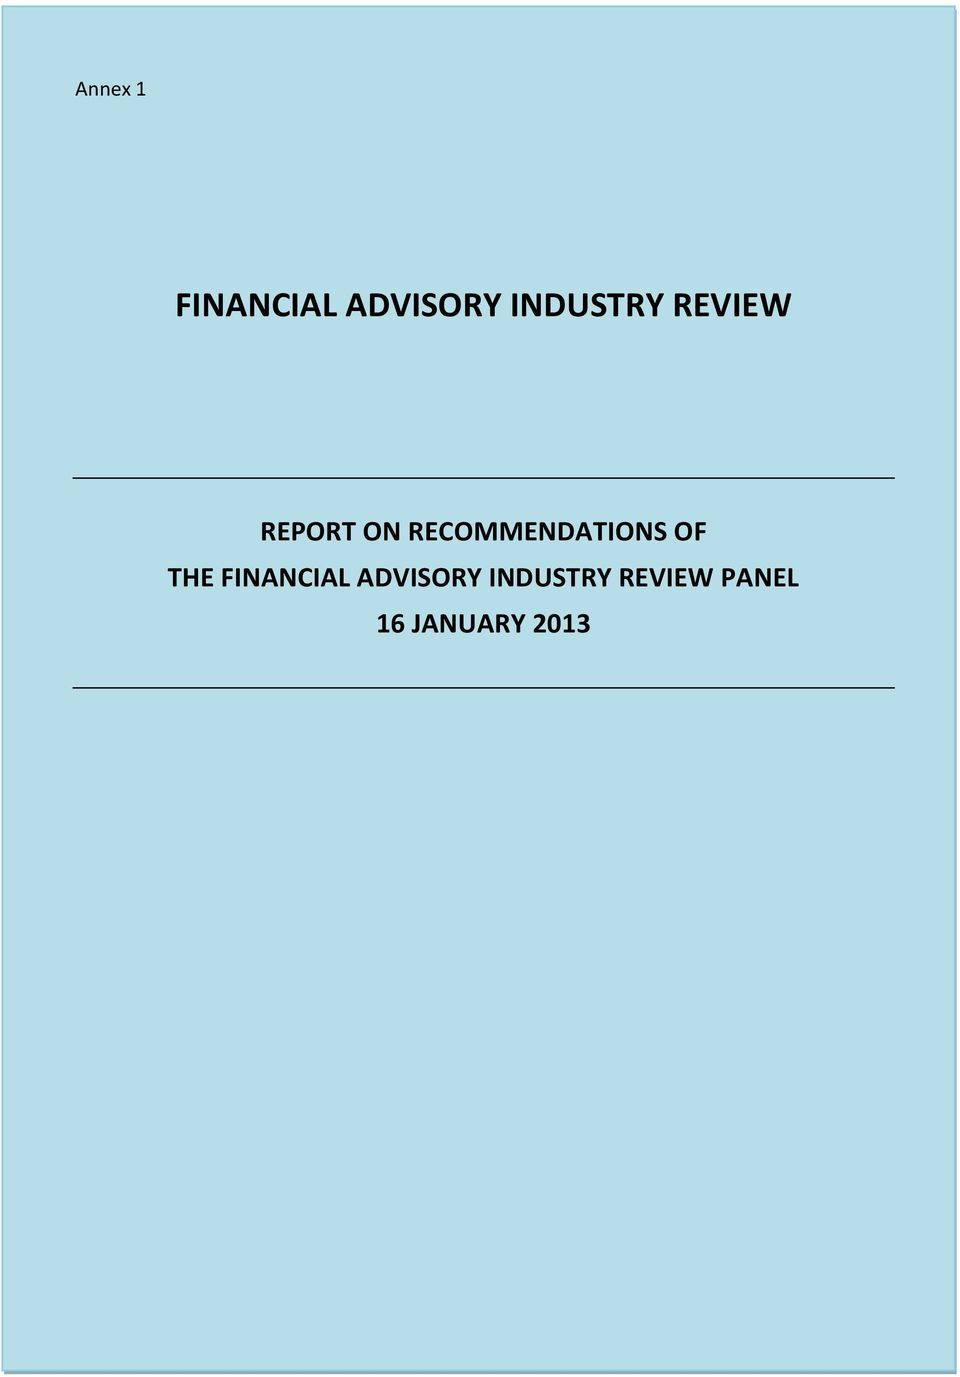 RECOMMENDATIONS OF THE FINANCIAL